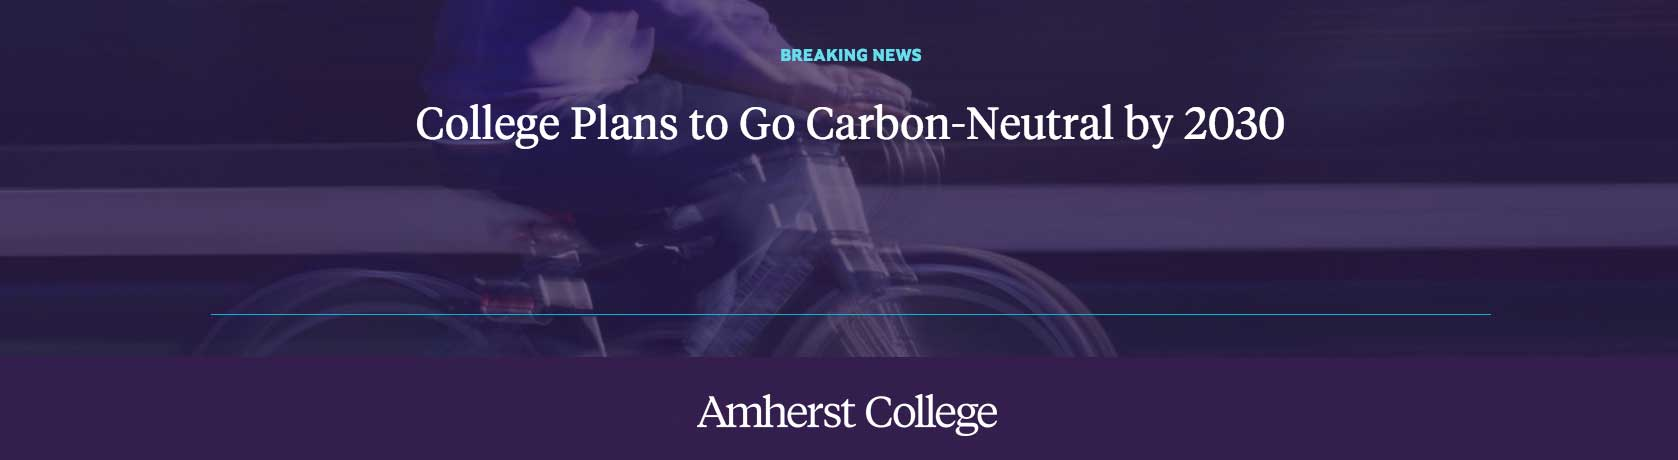 Amherst College plans to go carbon-neutral by 2030